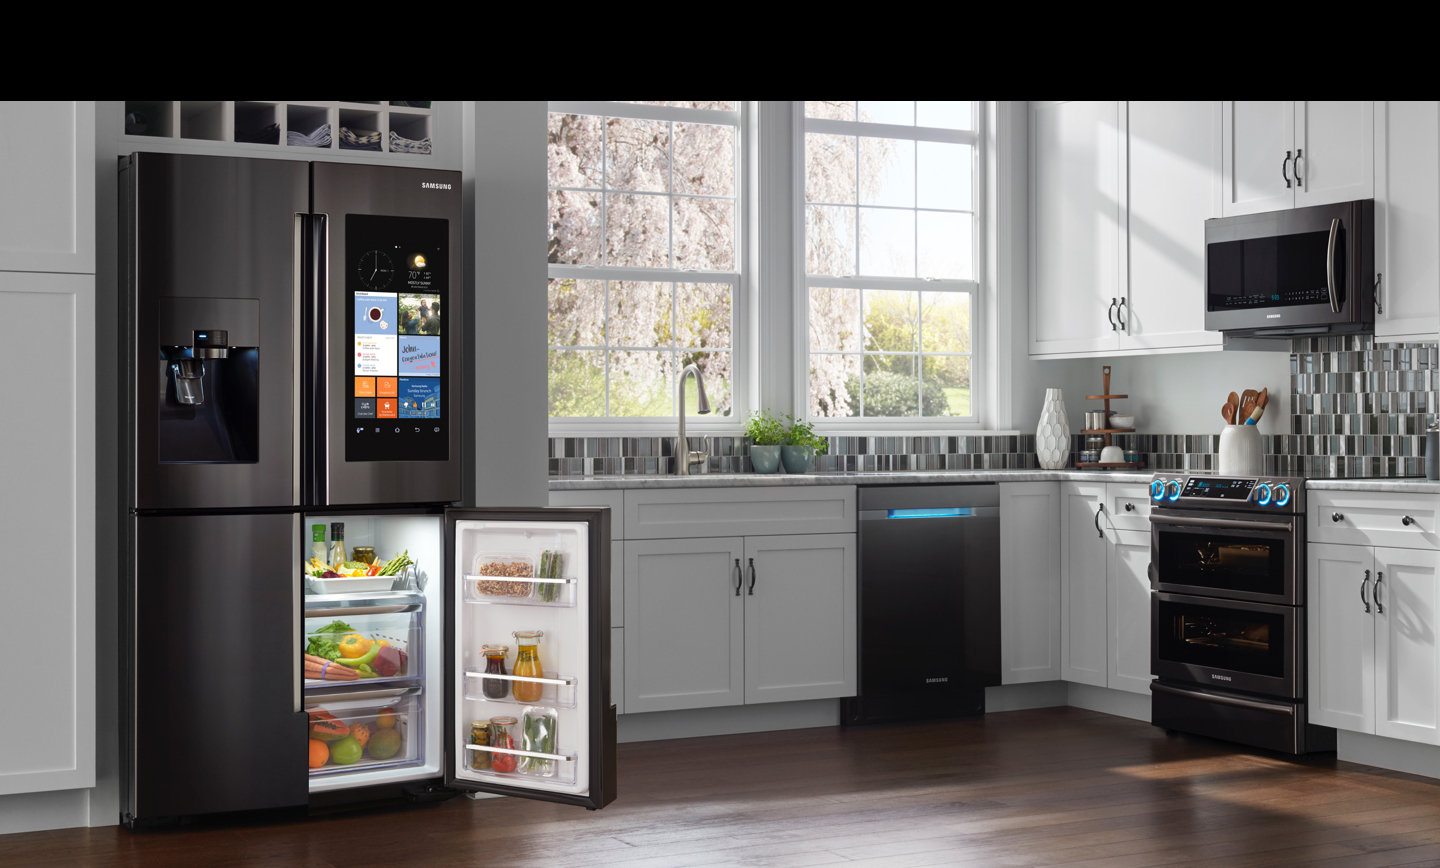 Best Kitchen Appliances ge slate appliances kitchen design quicuacom Kitchen Appliance Trends Appliance Color Trends